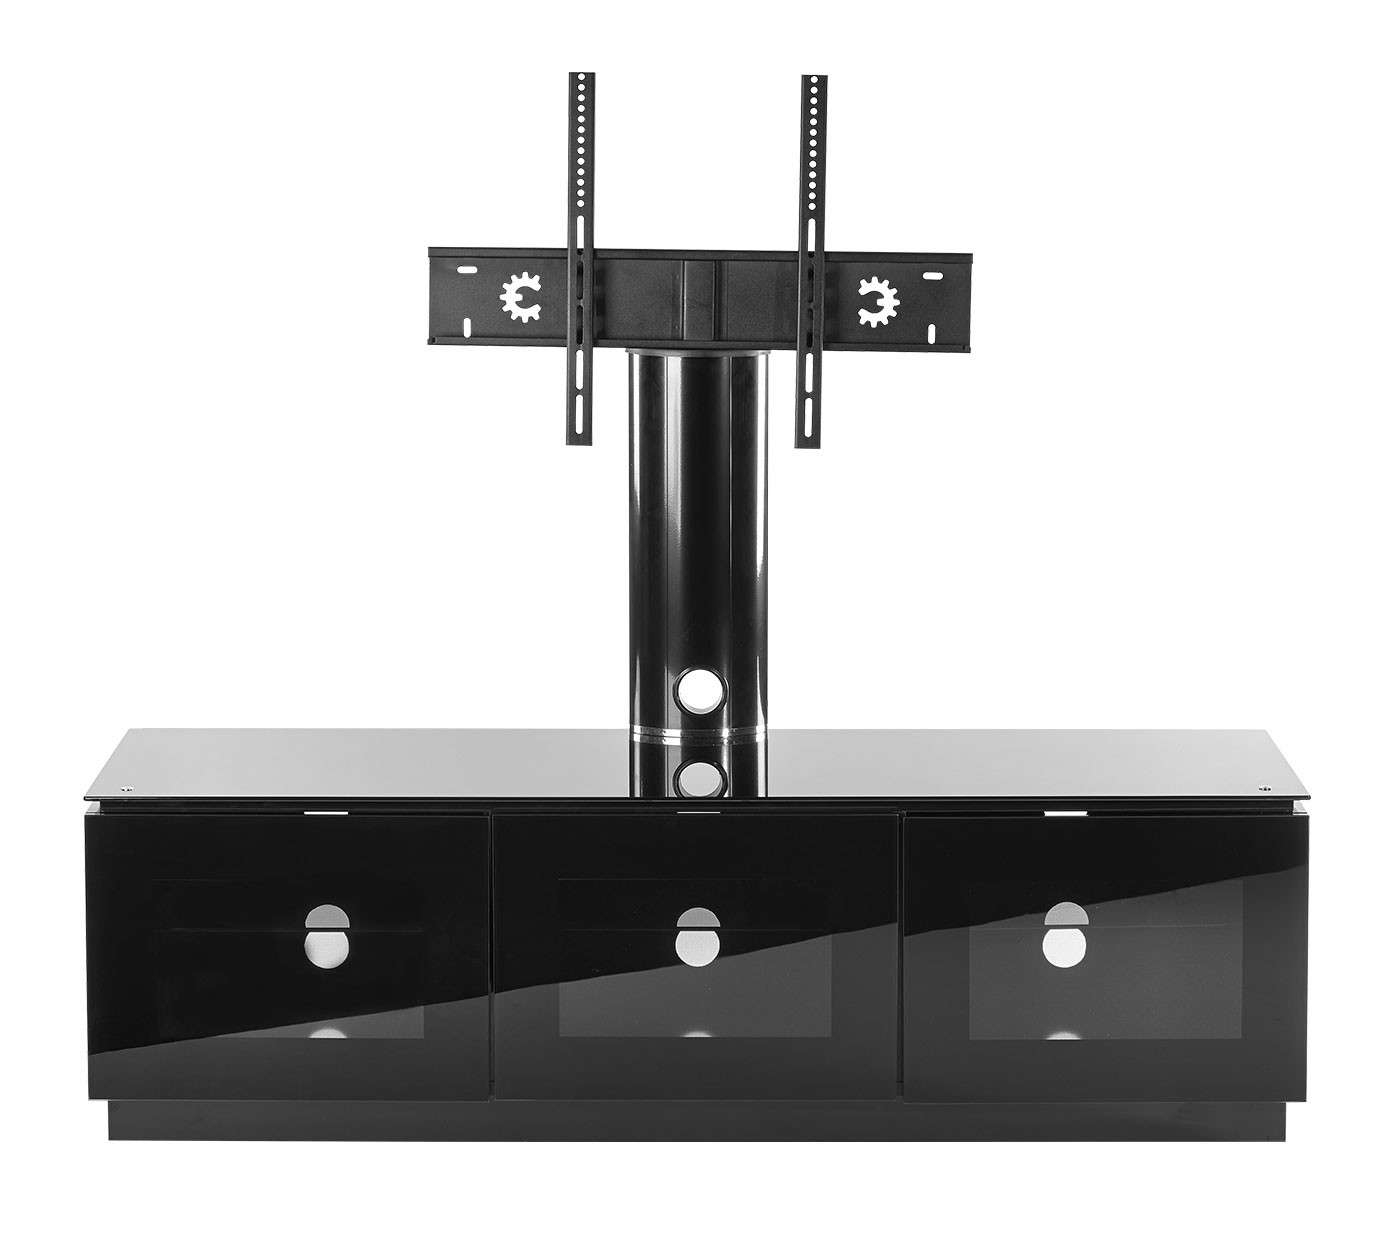 Black Tv Cabinet With Mount For Up To 65 Inch Tv | Mmt D1500 Xarm With Tv Cabinets (View 9 of 20)